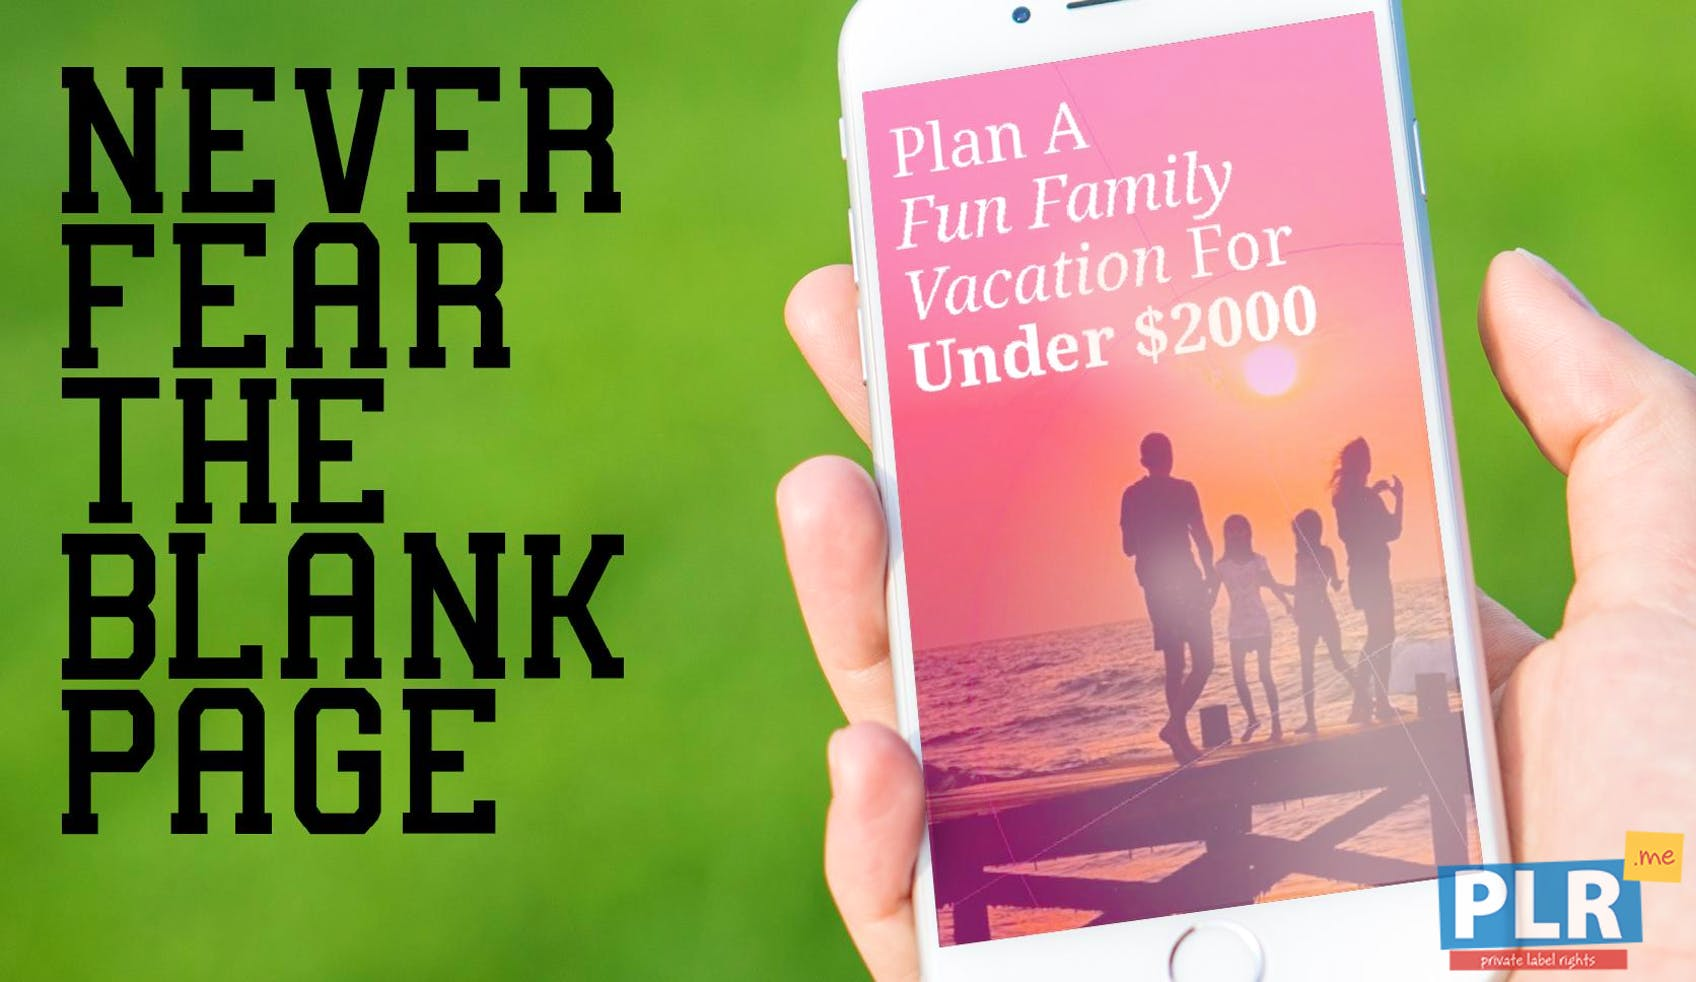 Plan A Fun Family Vacation For Under 2000